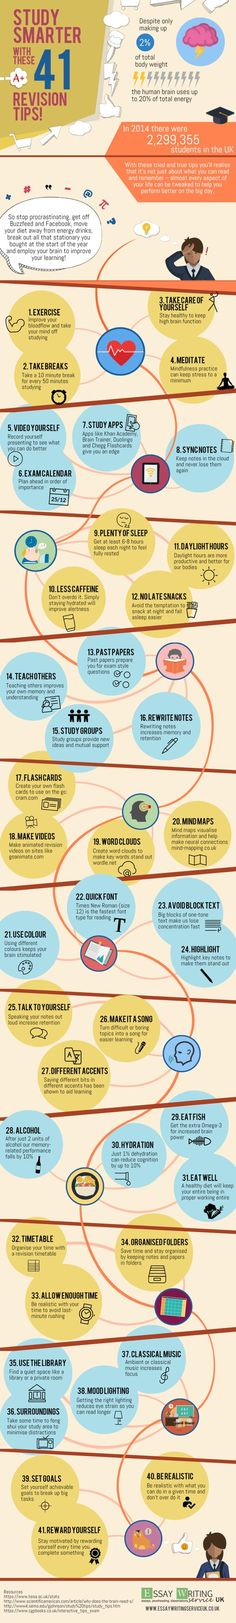 41 Revision Tips to Study Smarter Infographic - http://elearninginfographics.com/41-revision-tips-study-smarter-infographic/: